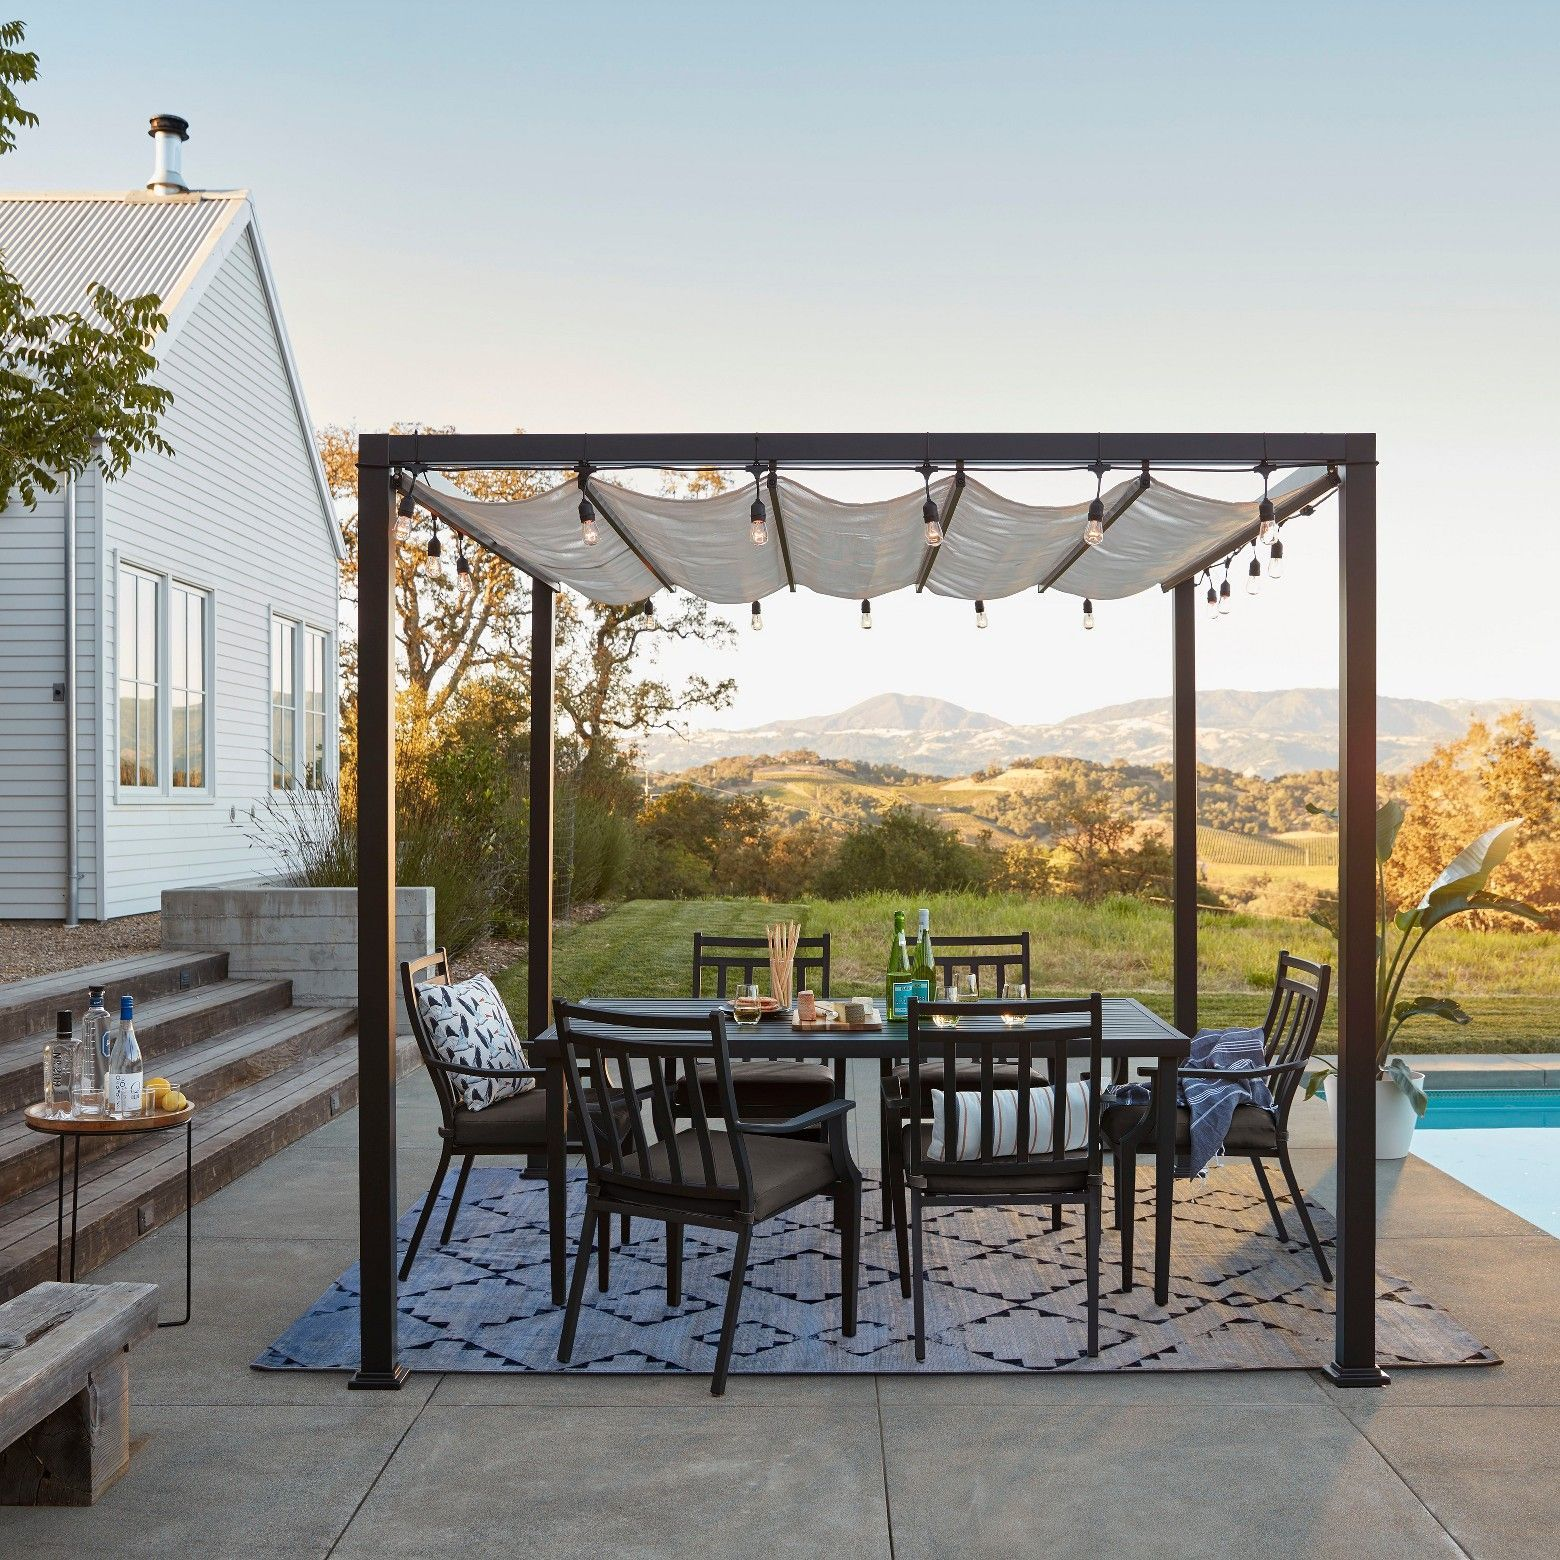 Pergola Bois Et Fer keep the perfect amount of shade covering your outdoor space